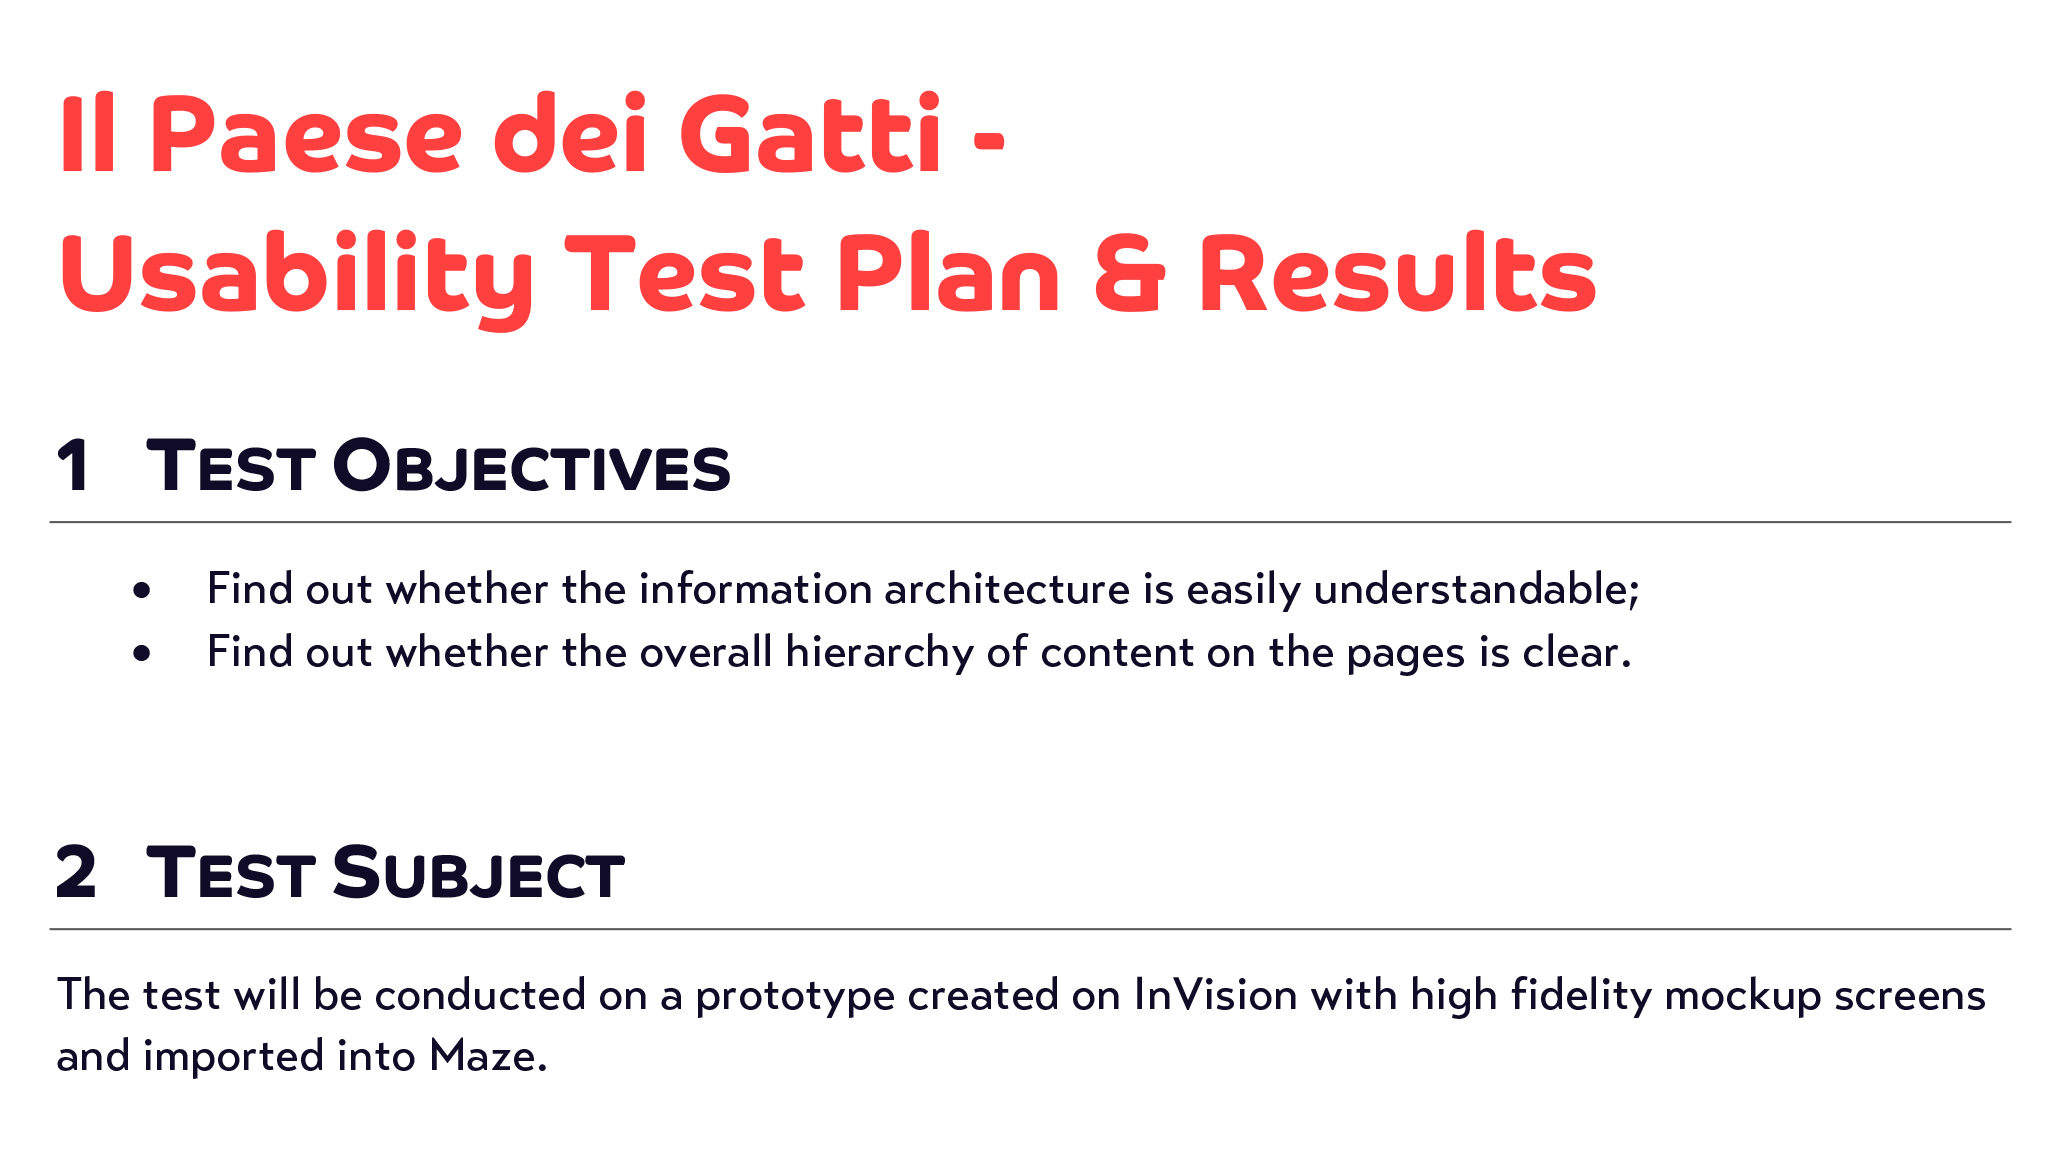 ipdg_usability_test_results_v20200217-1_cropped